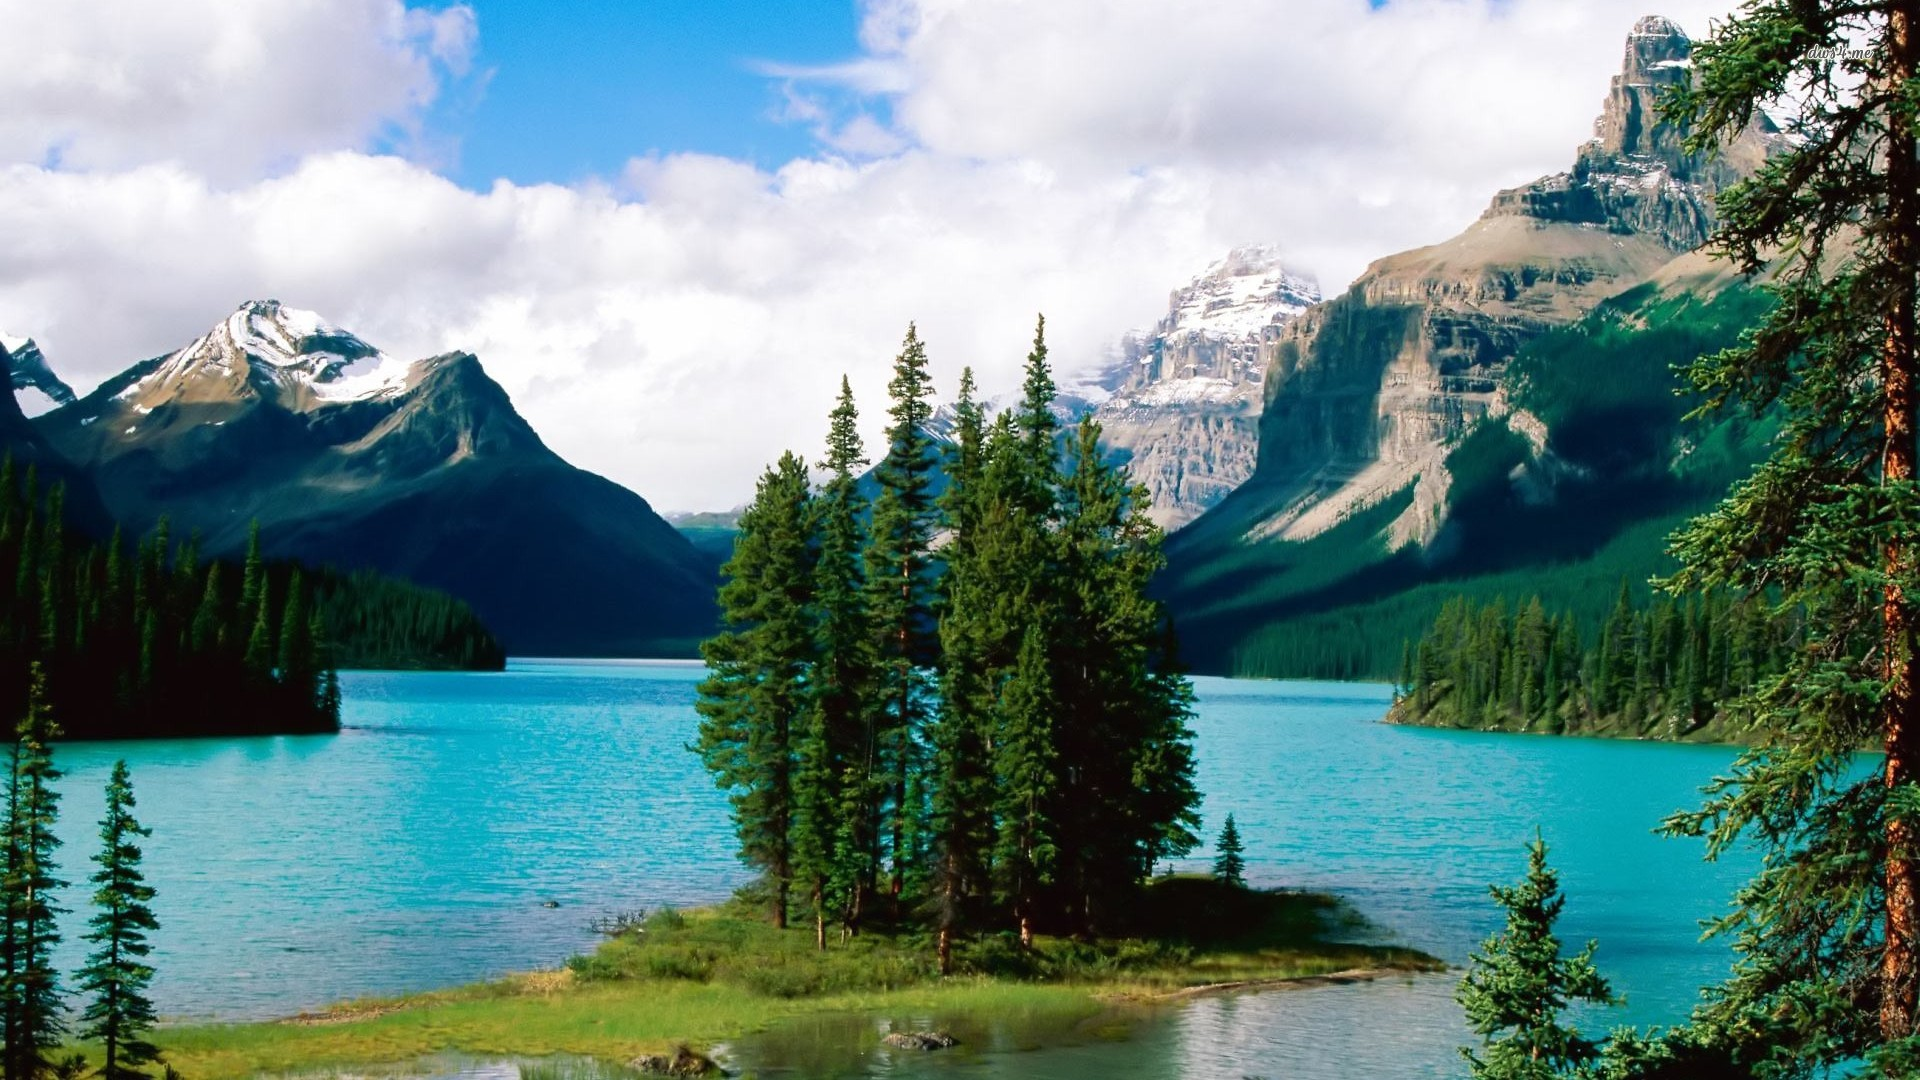 Jasper national park wallpapers pictures images for Wallpaper canada